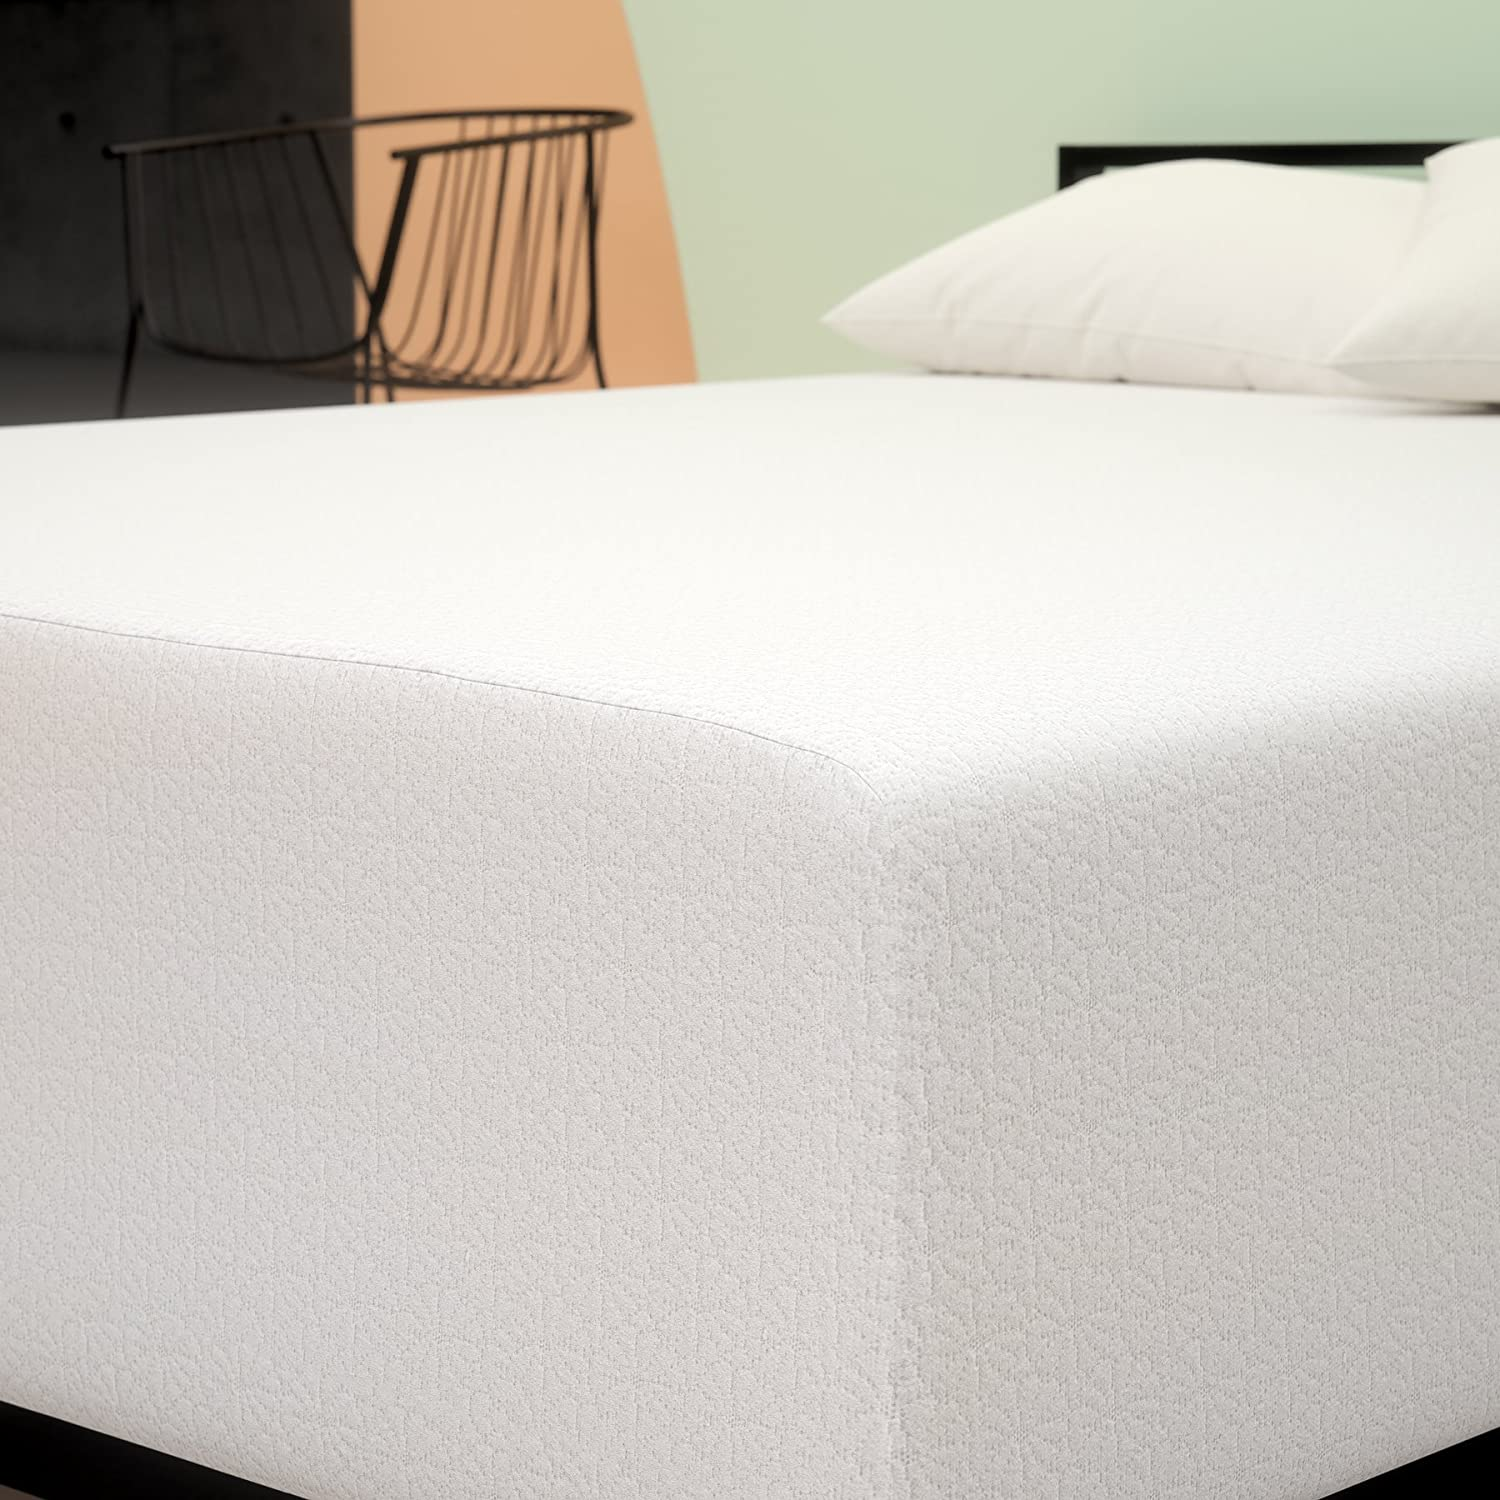 How much is the thickness of the mattress